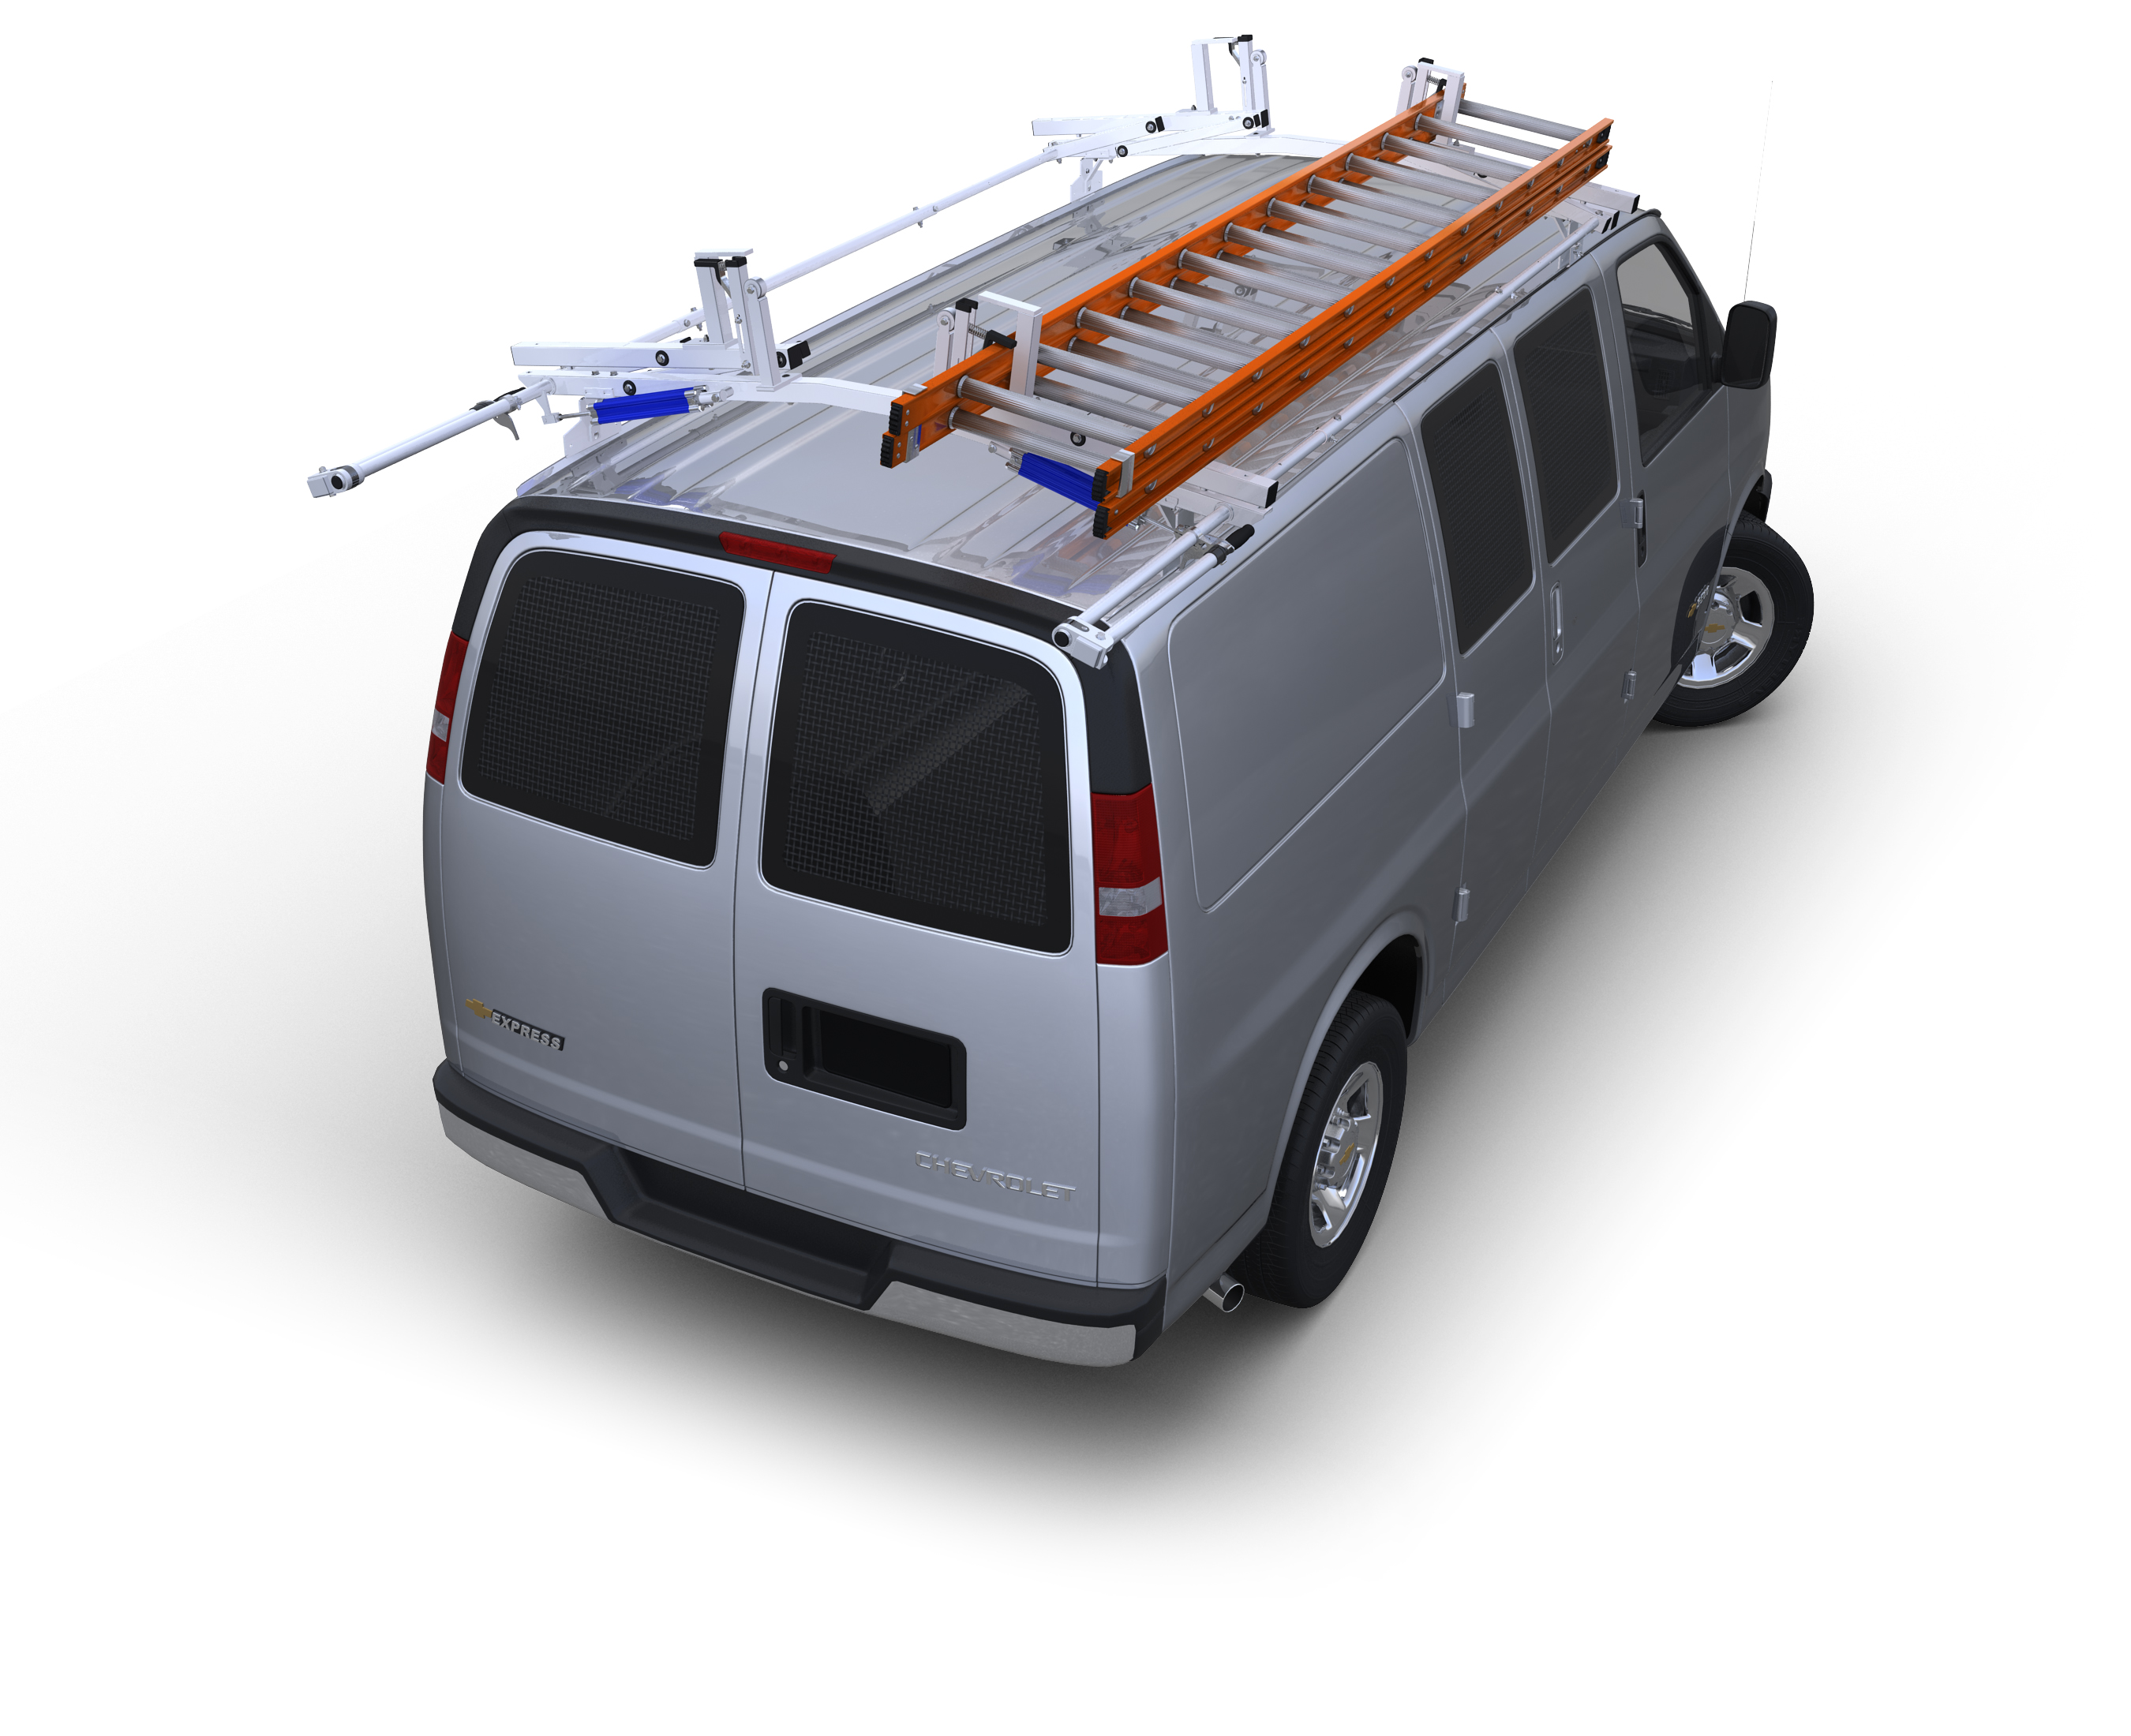 "2014 Transit Connect Contour Shelving with Back, 32"" Wide"